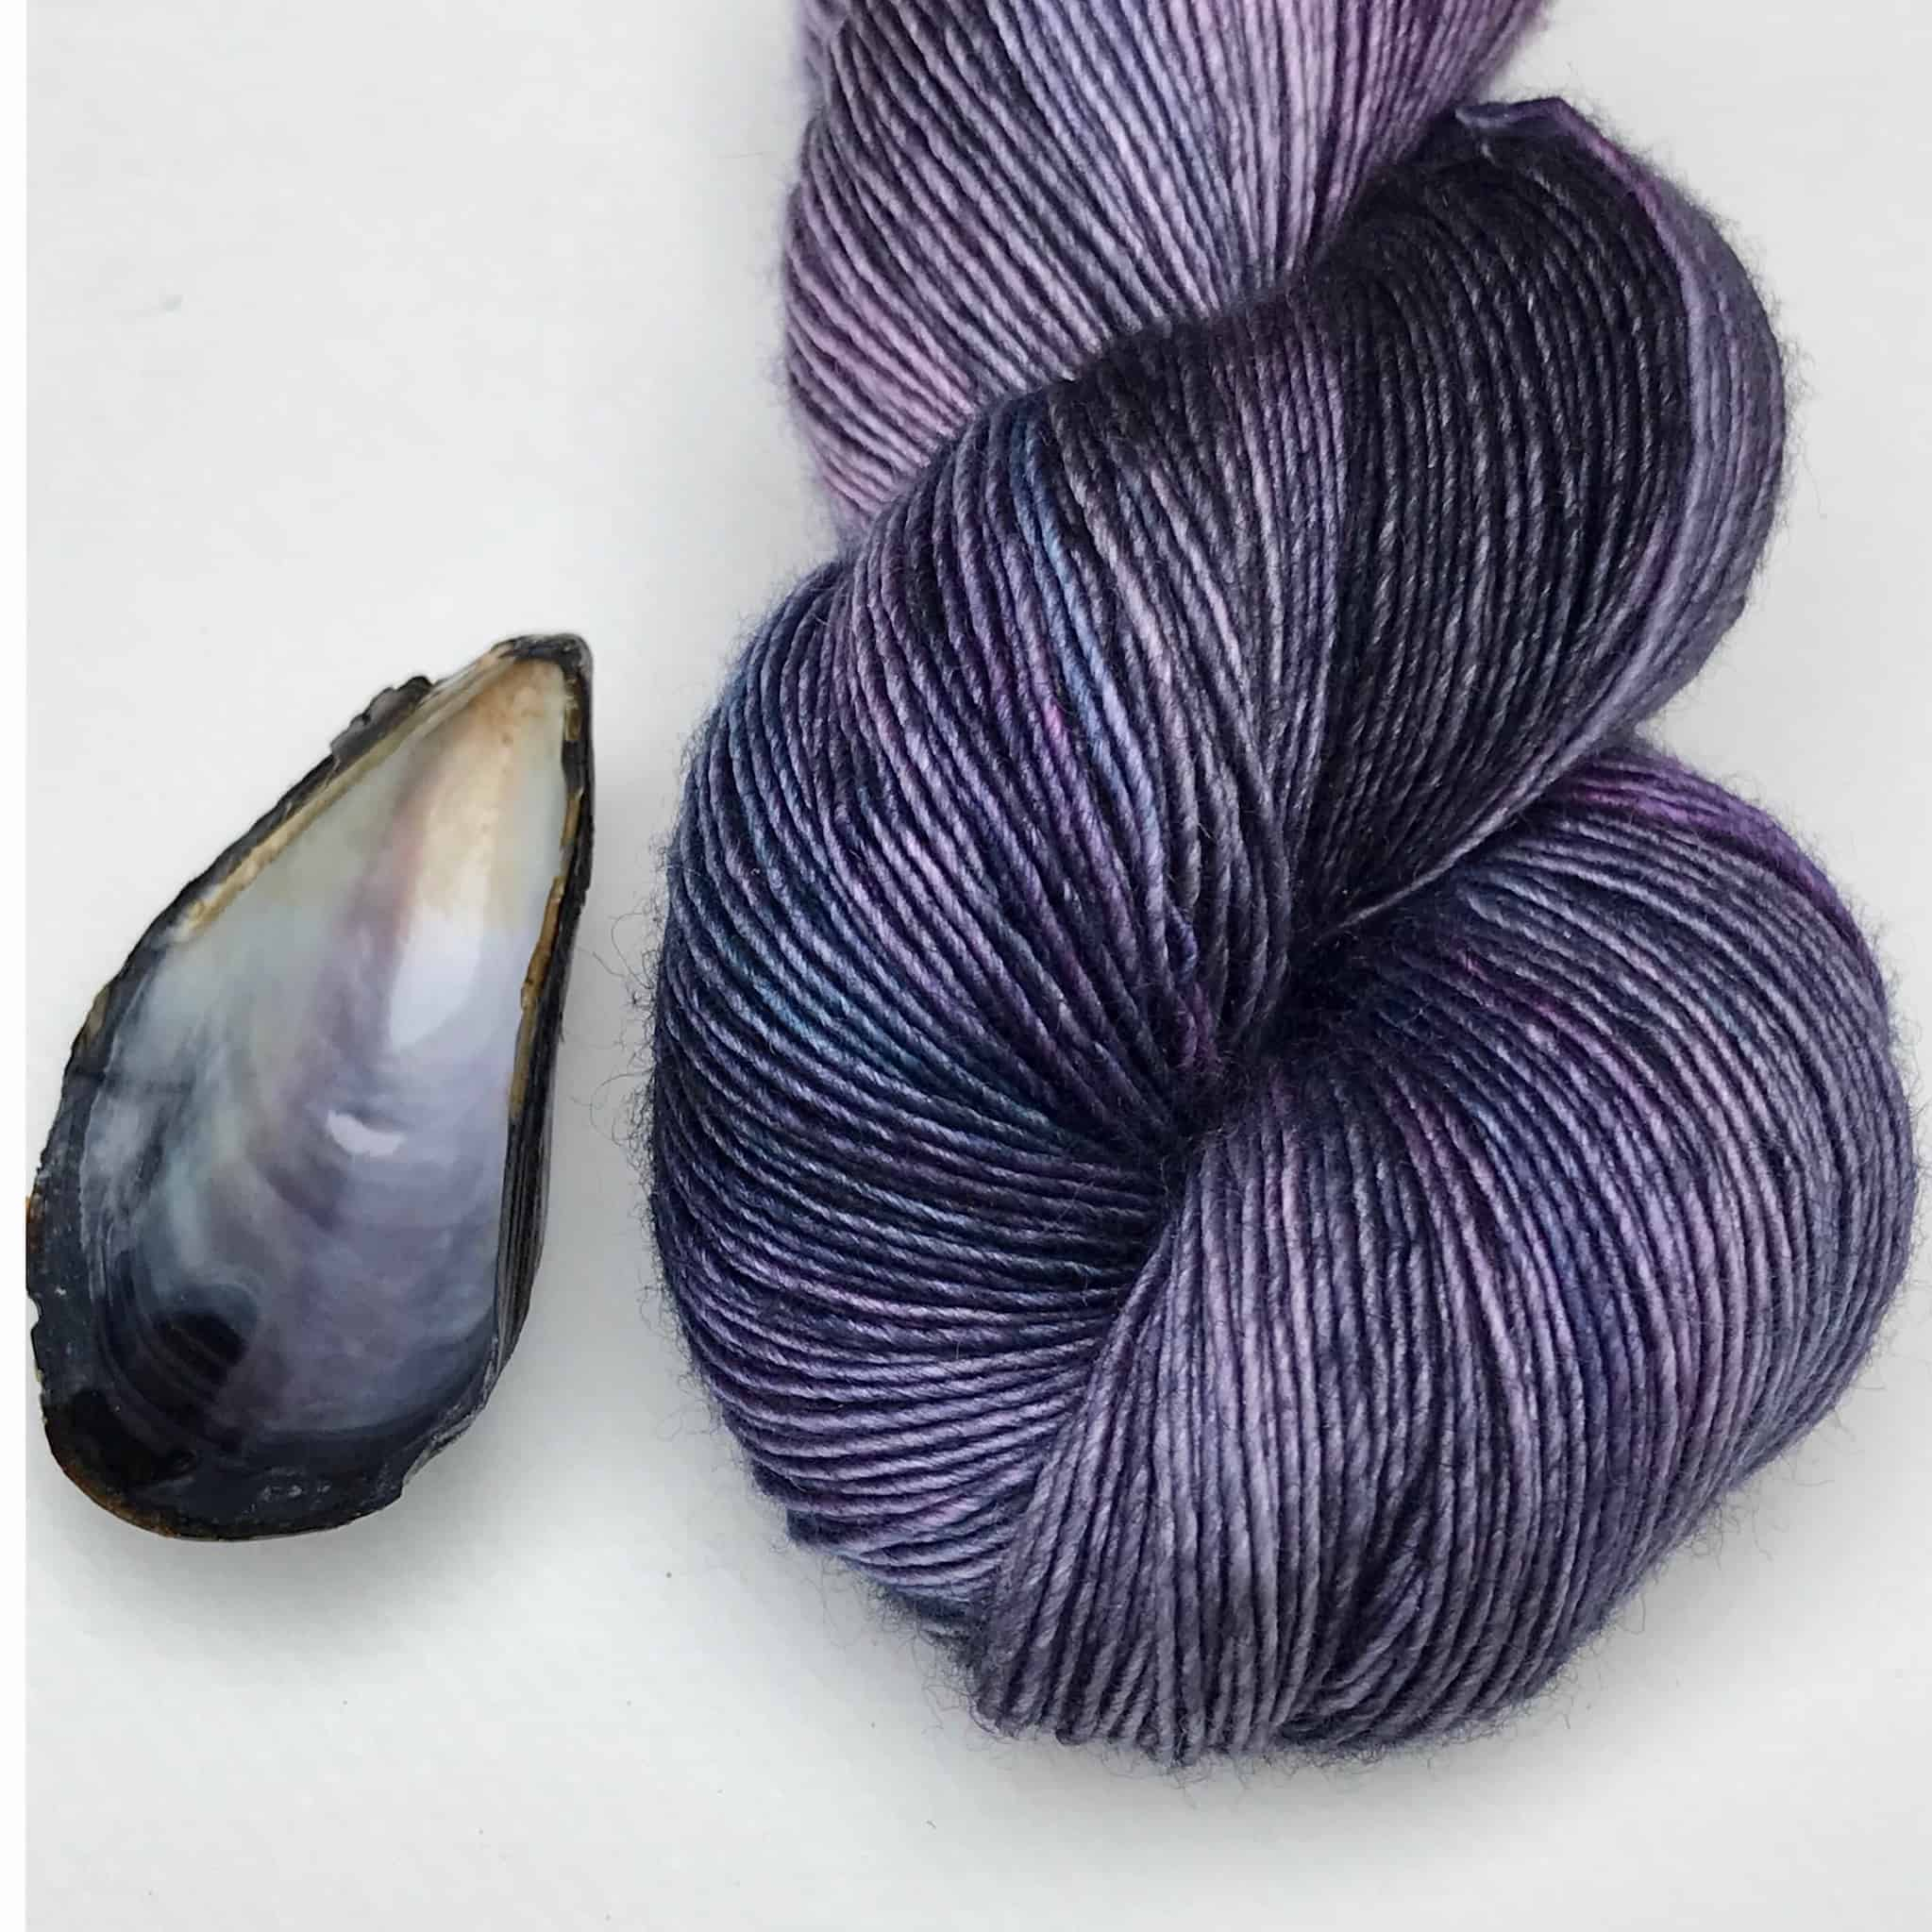 A skein of purple yarn next to a seashell.